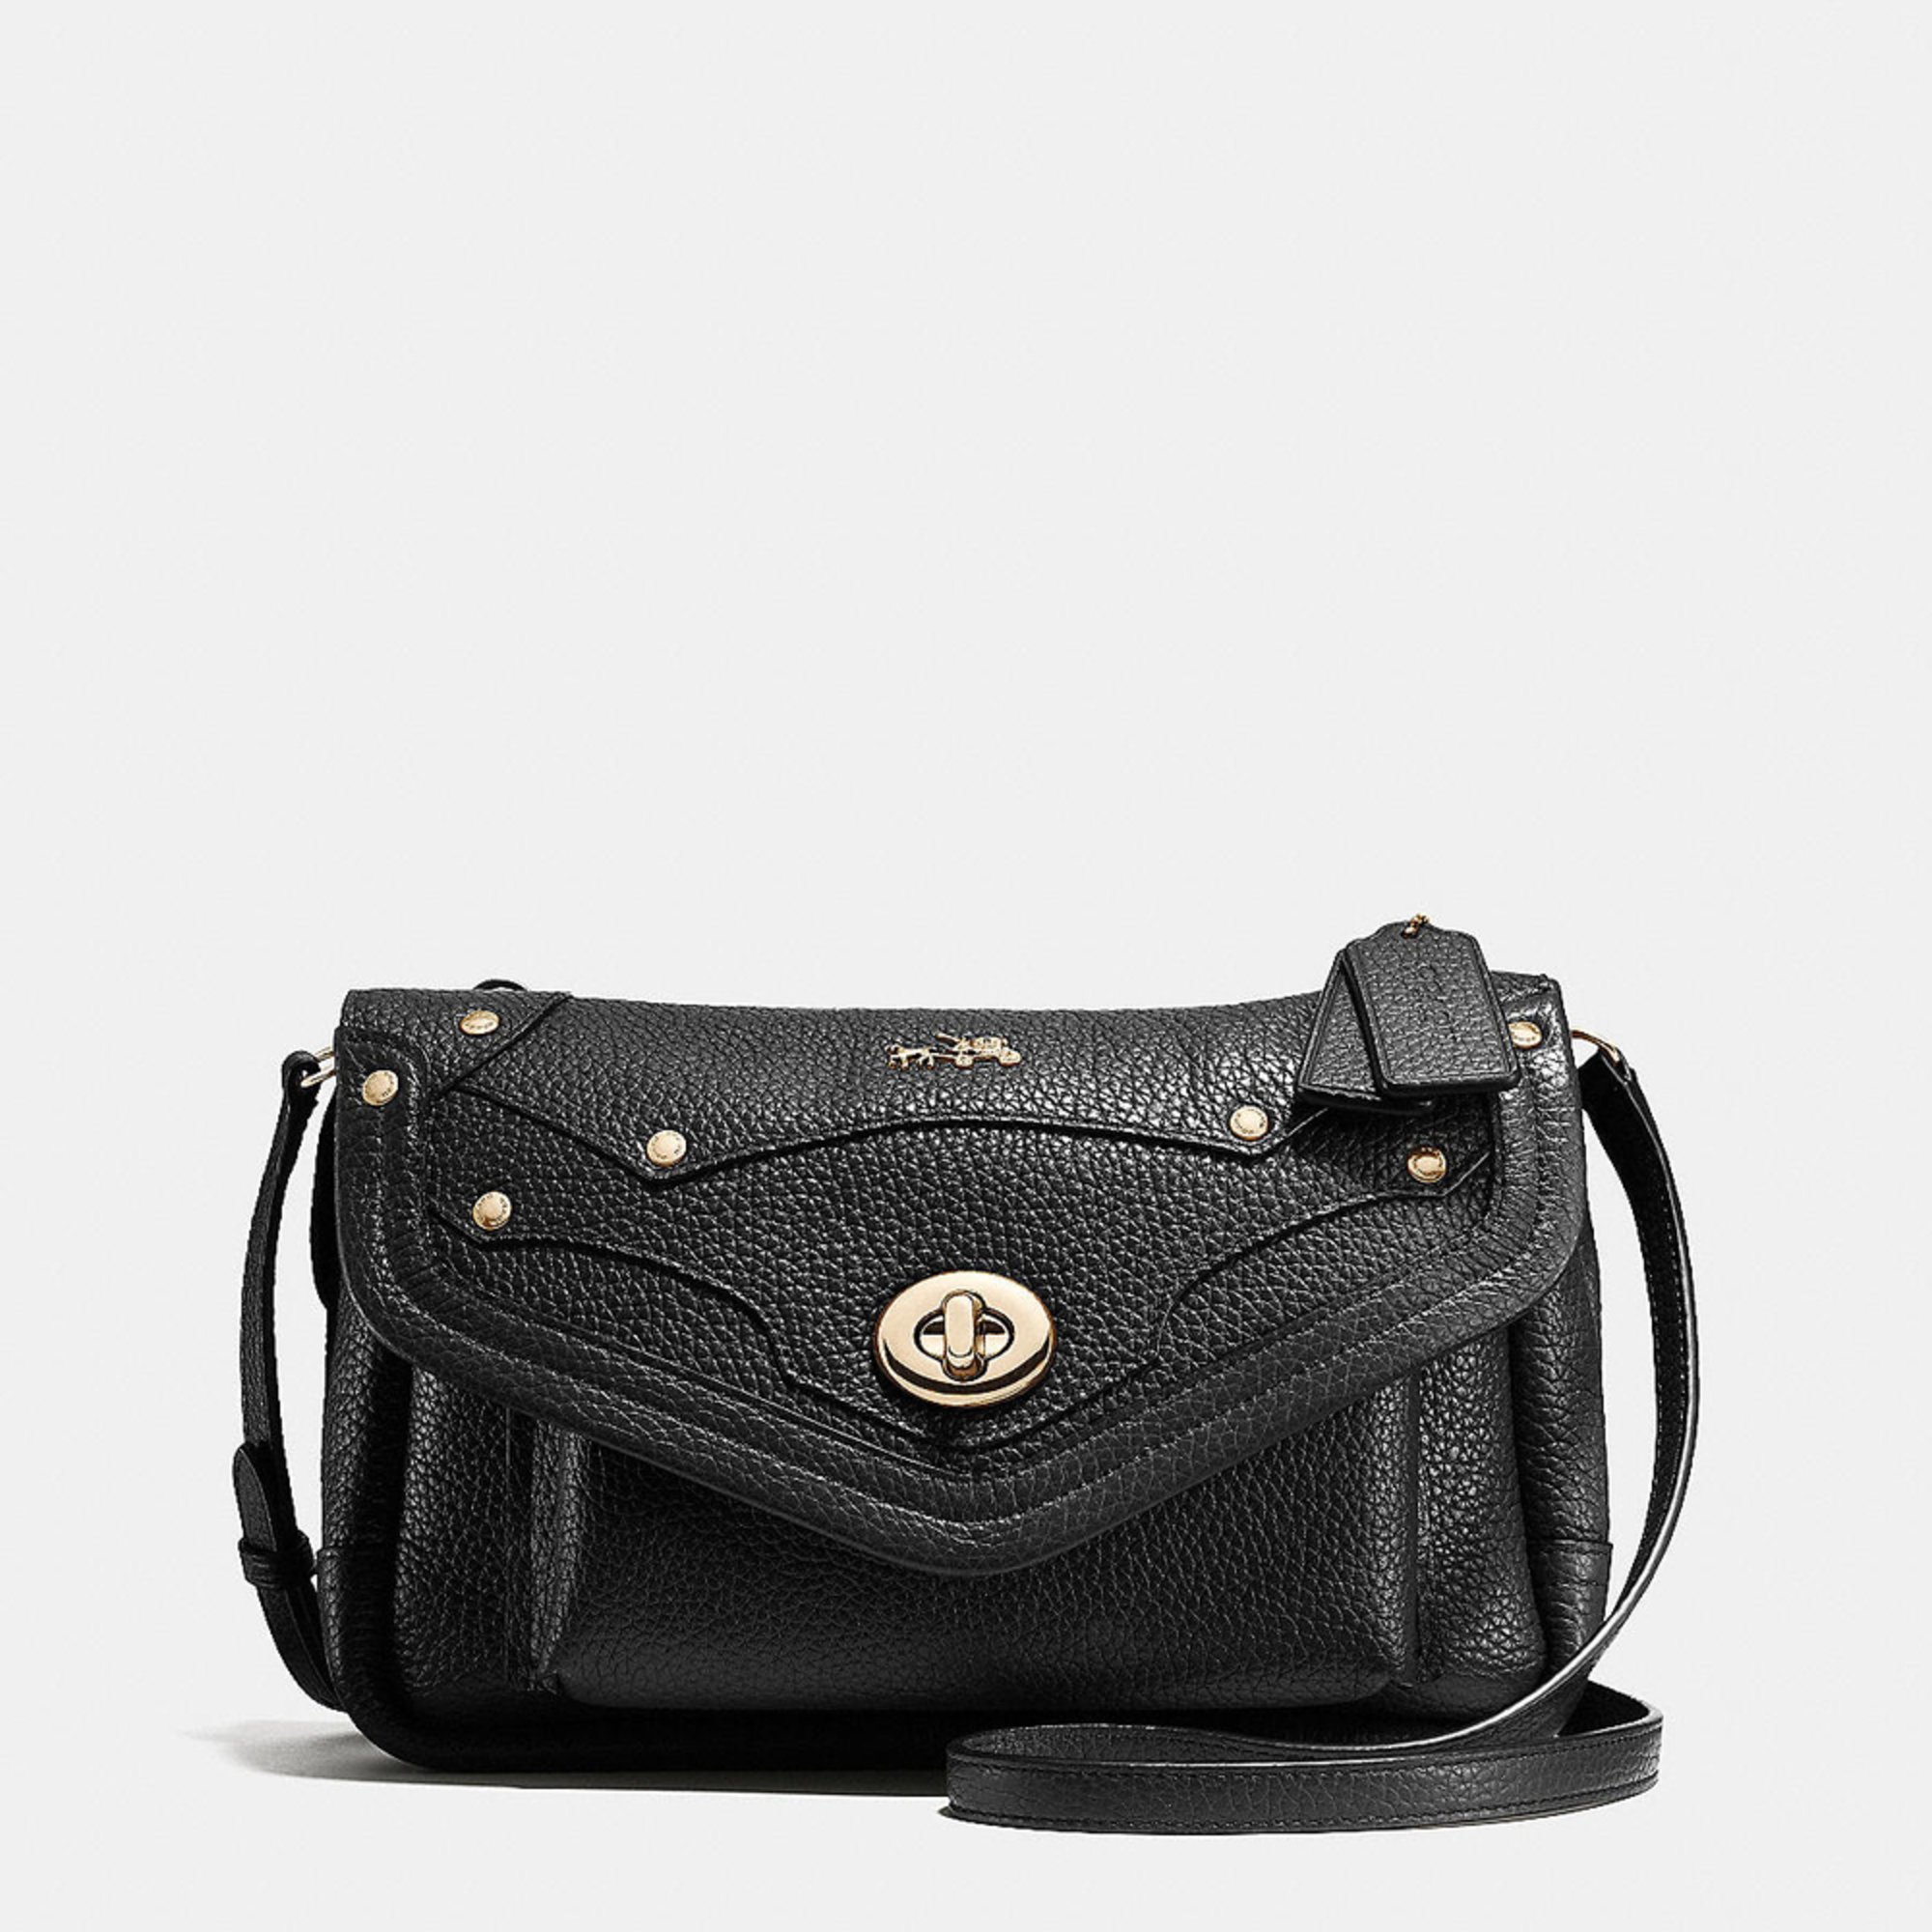 coach purse clearance outlet b2lx  coach purse clearance outlet